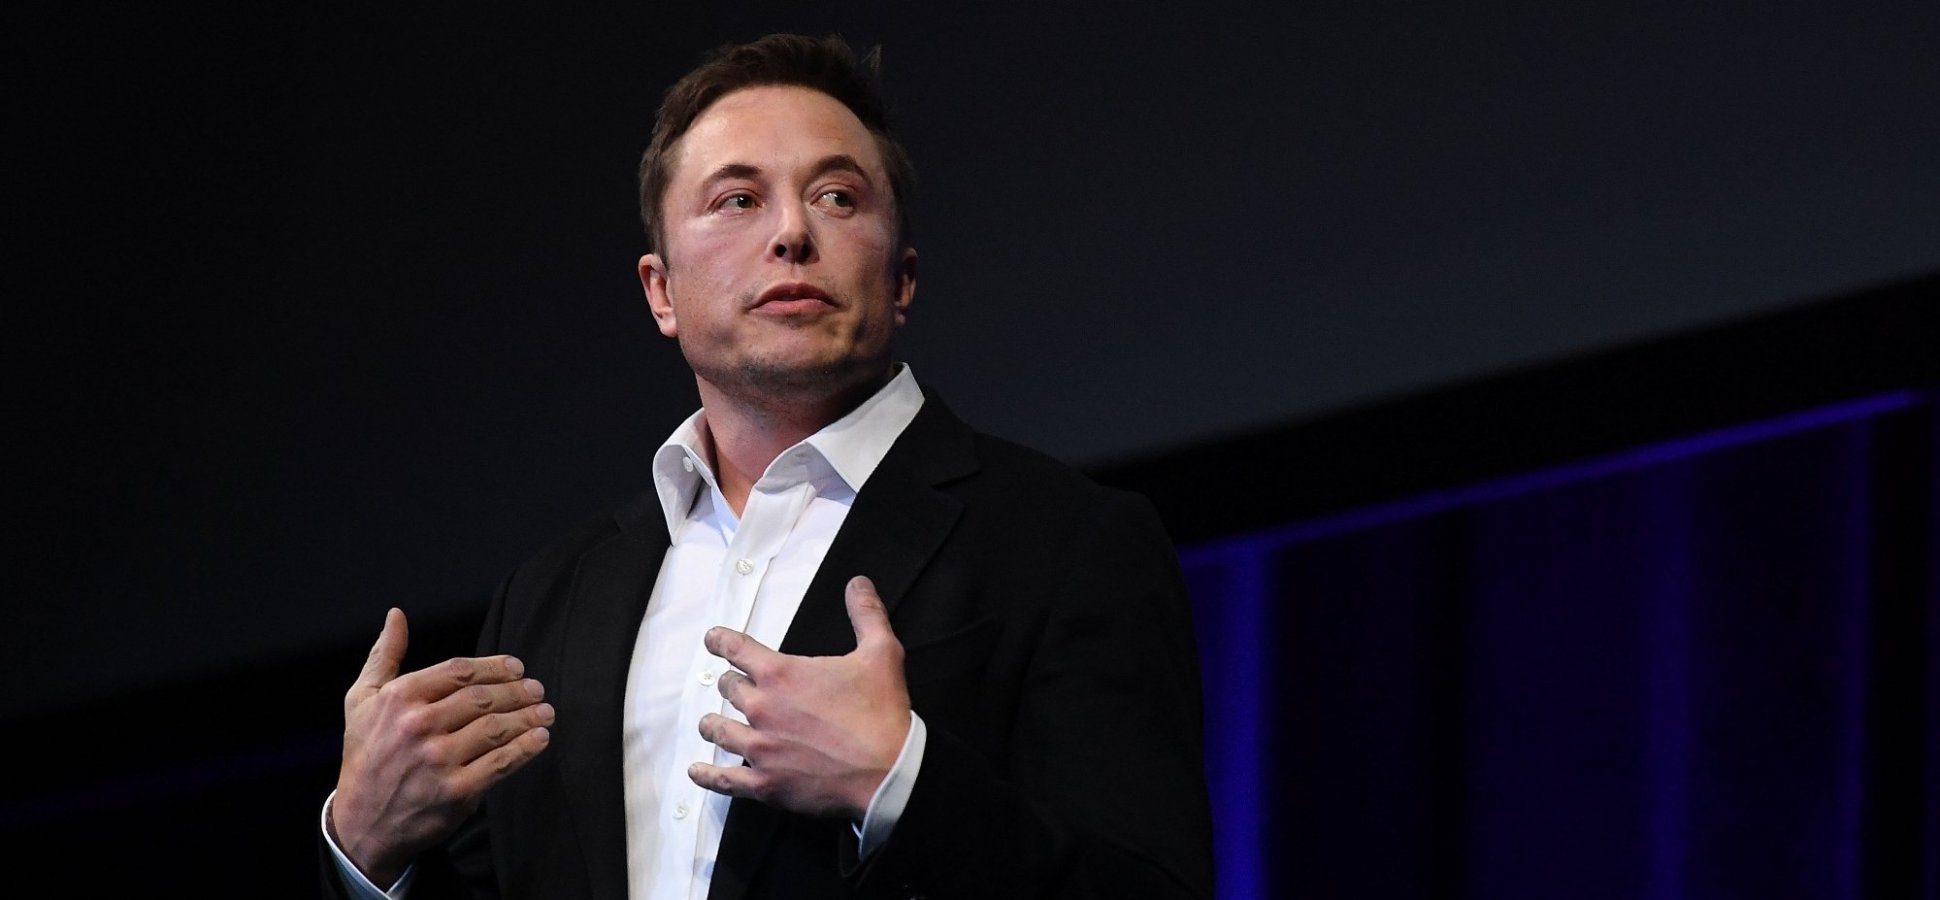 What You Can Learn About Doing Hard Things From Elon Musk--Even if You're Not Sending a Rocket Into Space